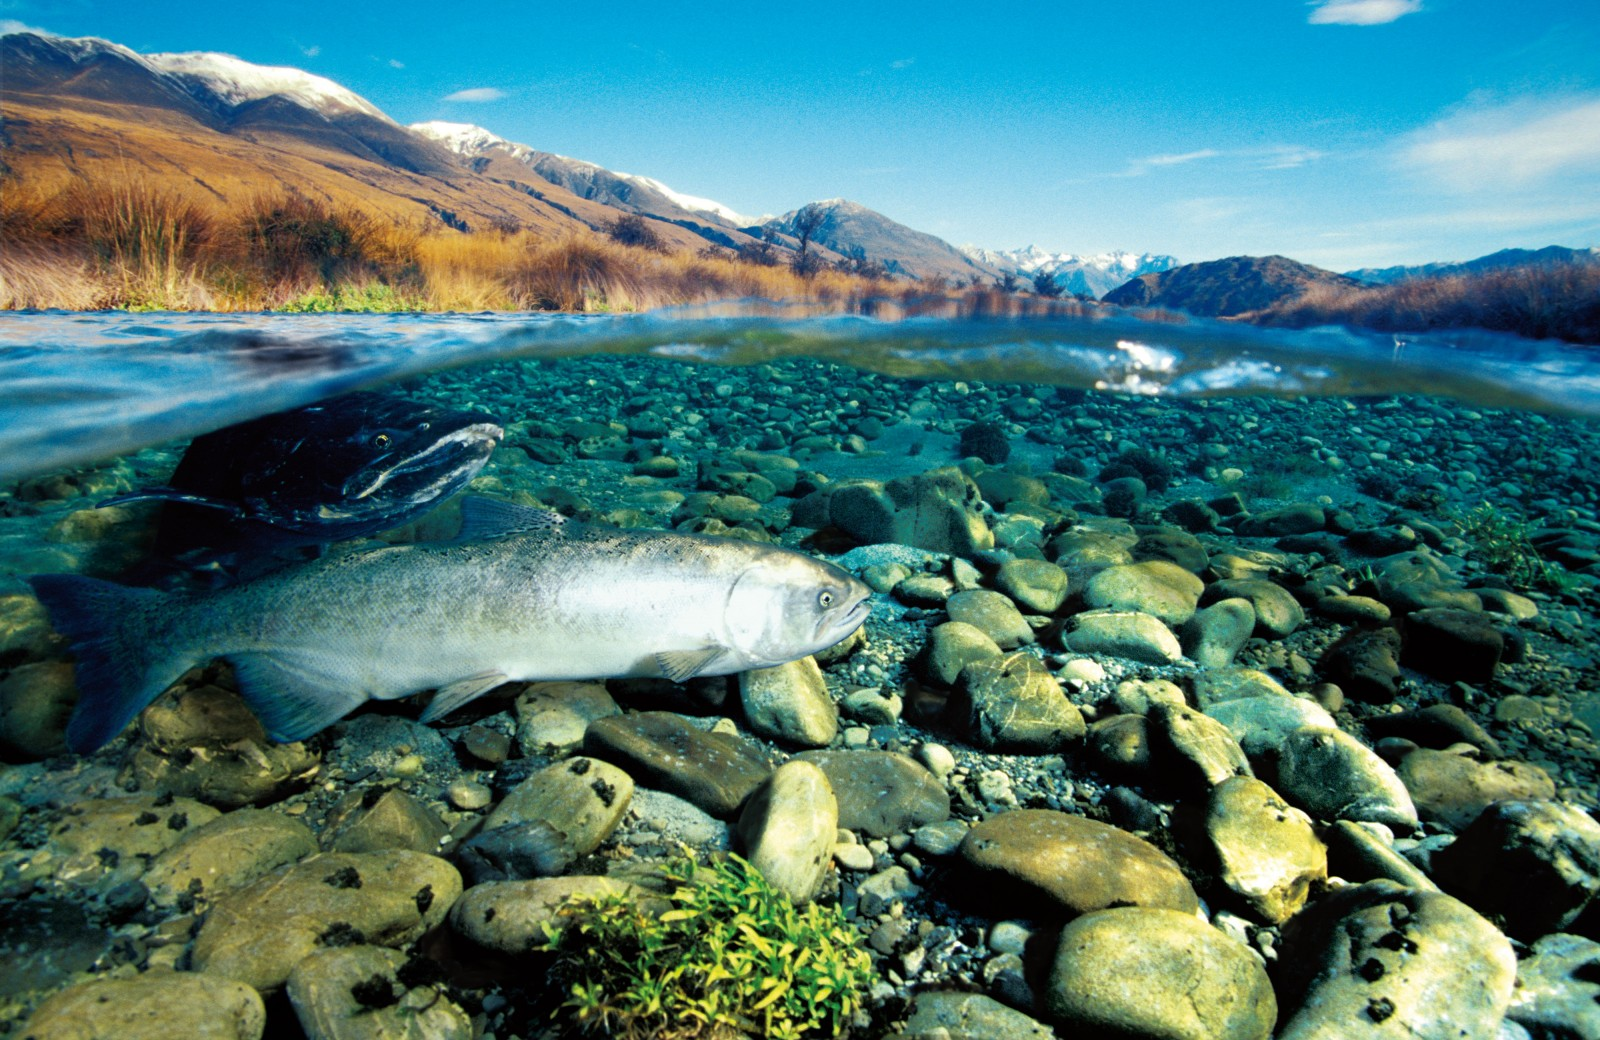 A pair of chinook, or quinnat, salmon prepare to spawn in Double Stream, in the Rakaia headwaters. Piecemeal liberations of spring-run stock from the McCloud River in California (see sidebar) in the late 1800s largely failed, but renewed efforts in the early 1900s eventually saw the prized sport fish taken during spawning runs along the Rangitata, Opihi, Ashburton, Rakaia, Waimakariri, Hurunui and the Waiau Rivers. The success of those later introductions has been put down to the use of ova from autumn-run populations.